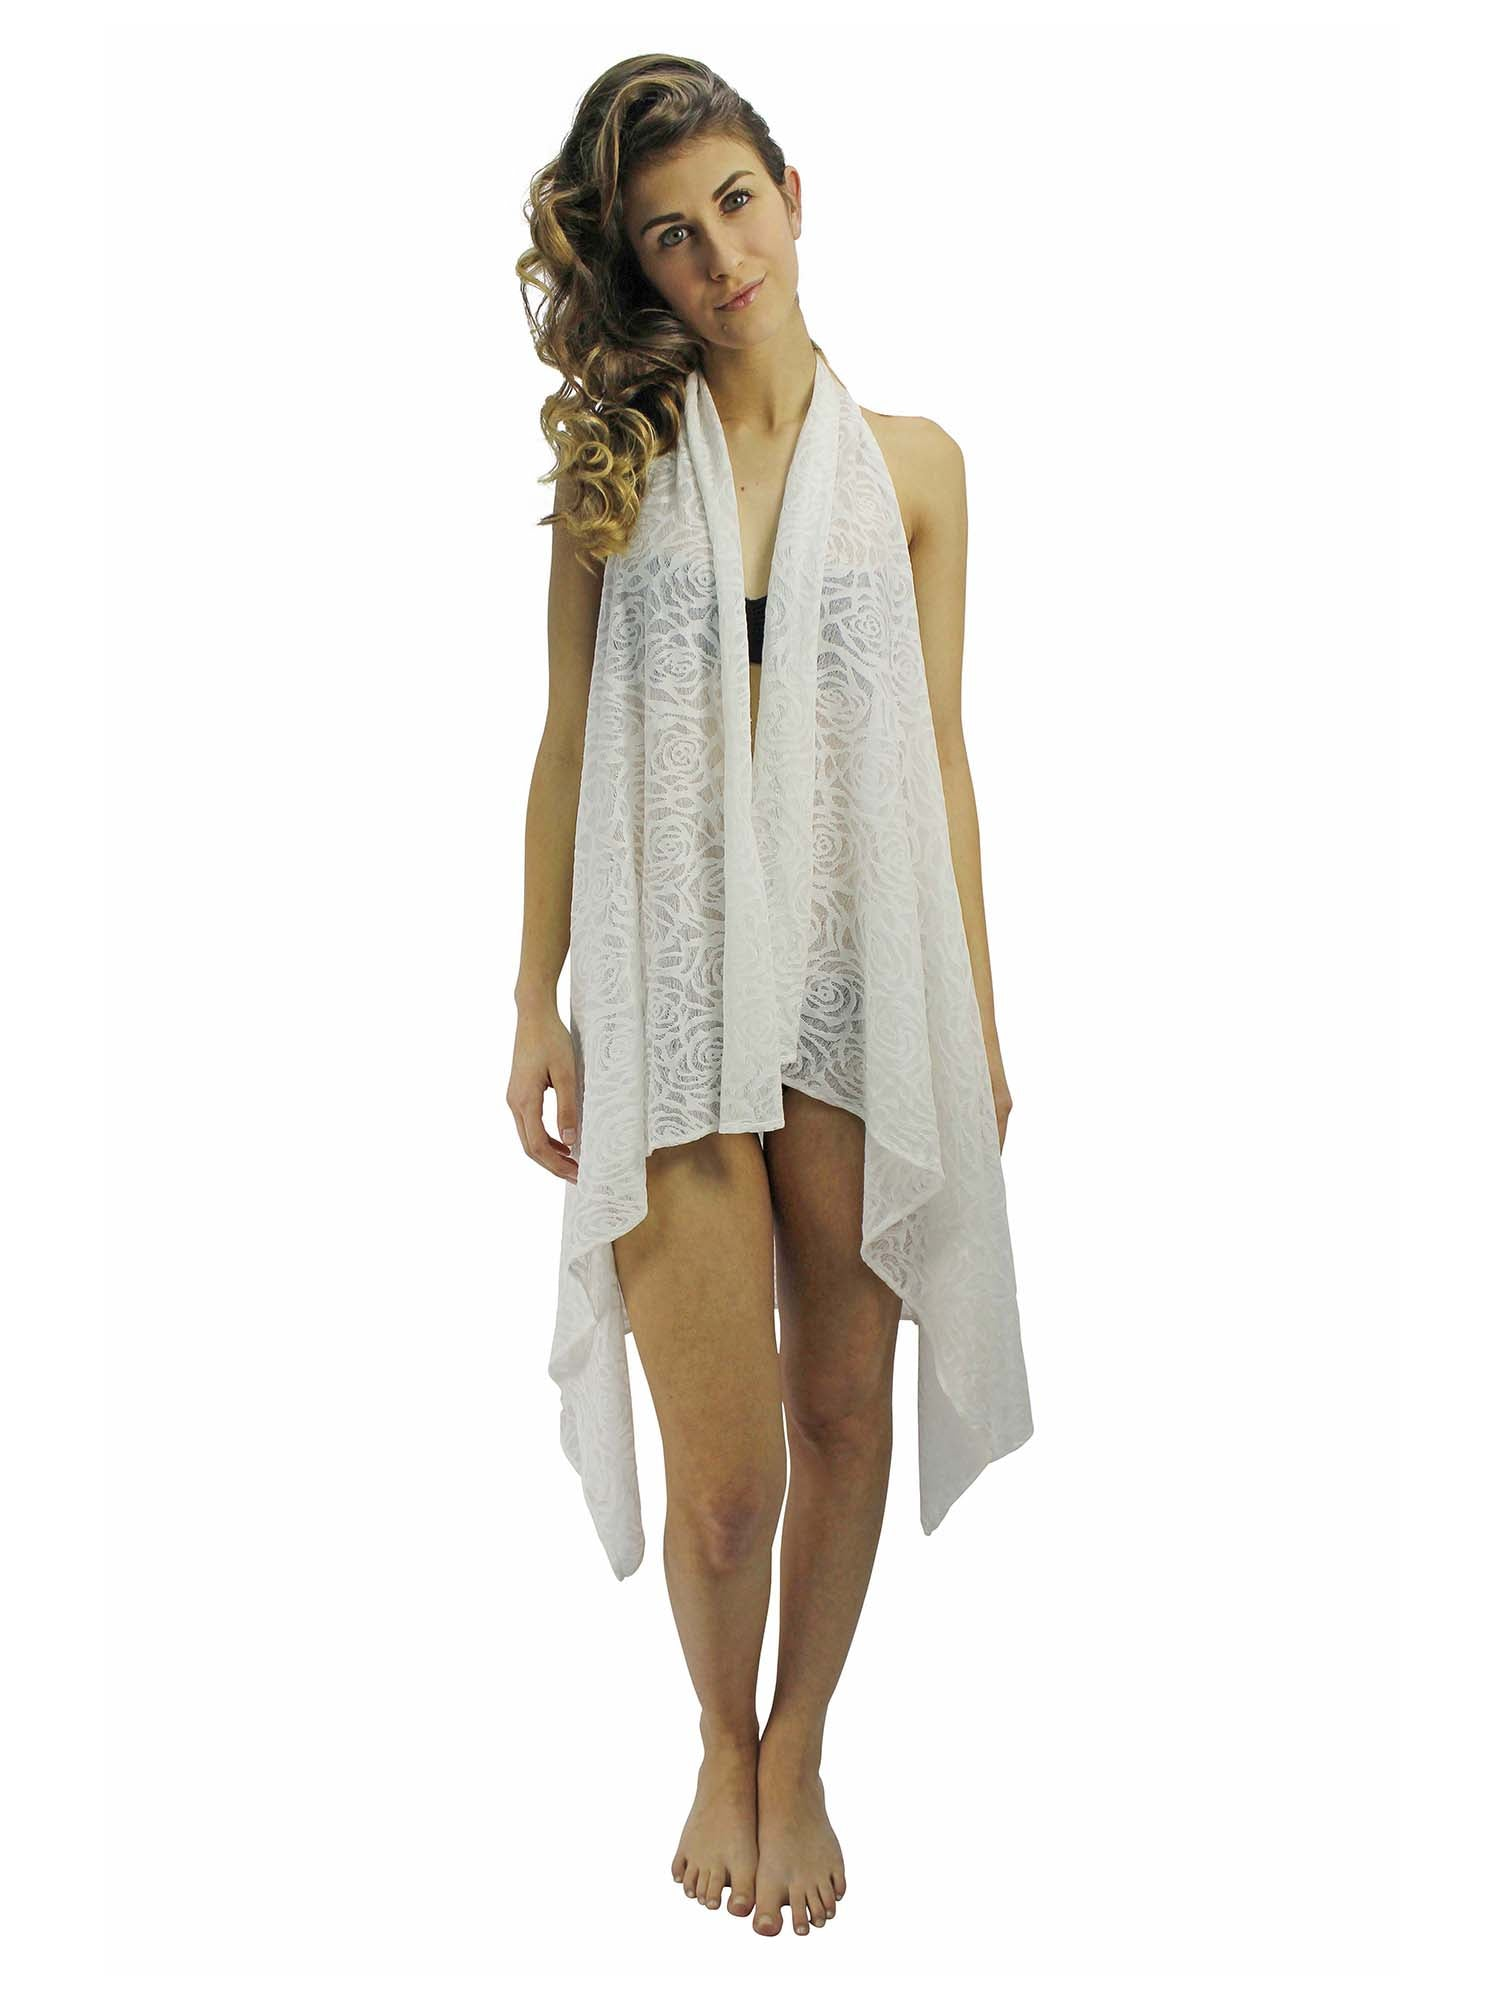 Rose Lace Backless Beach Cover Up Vest